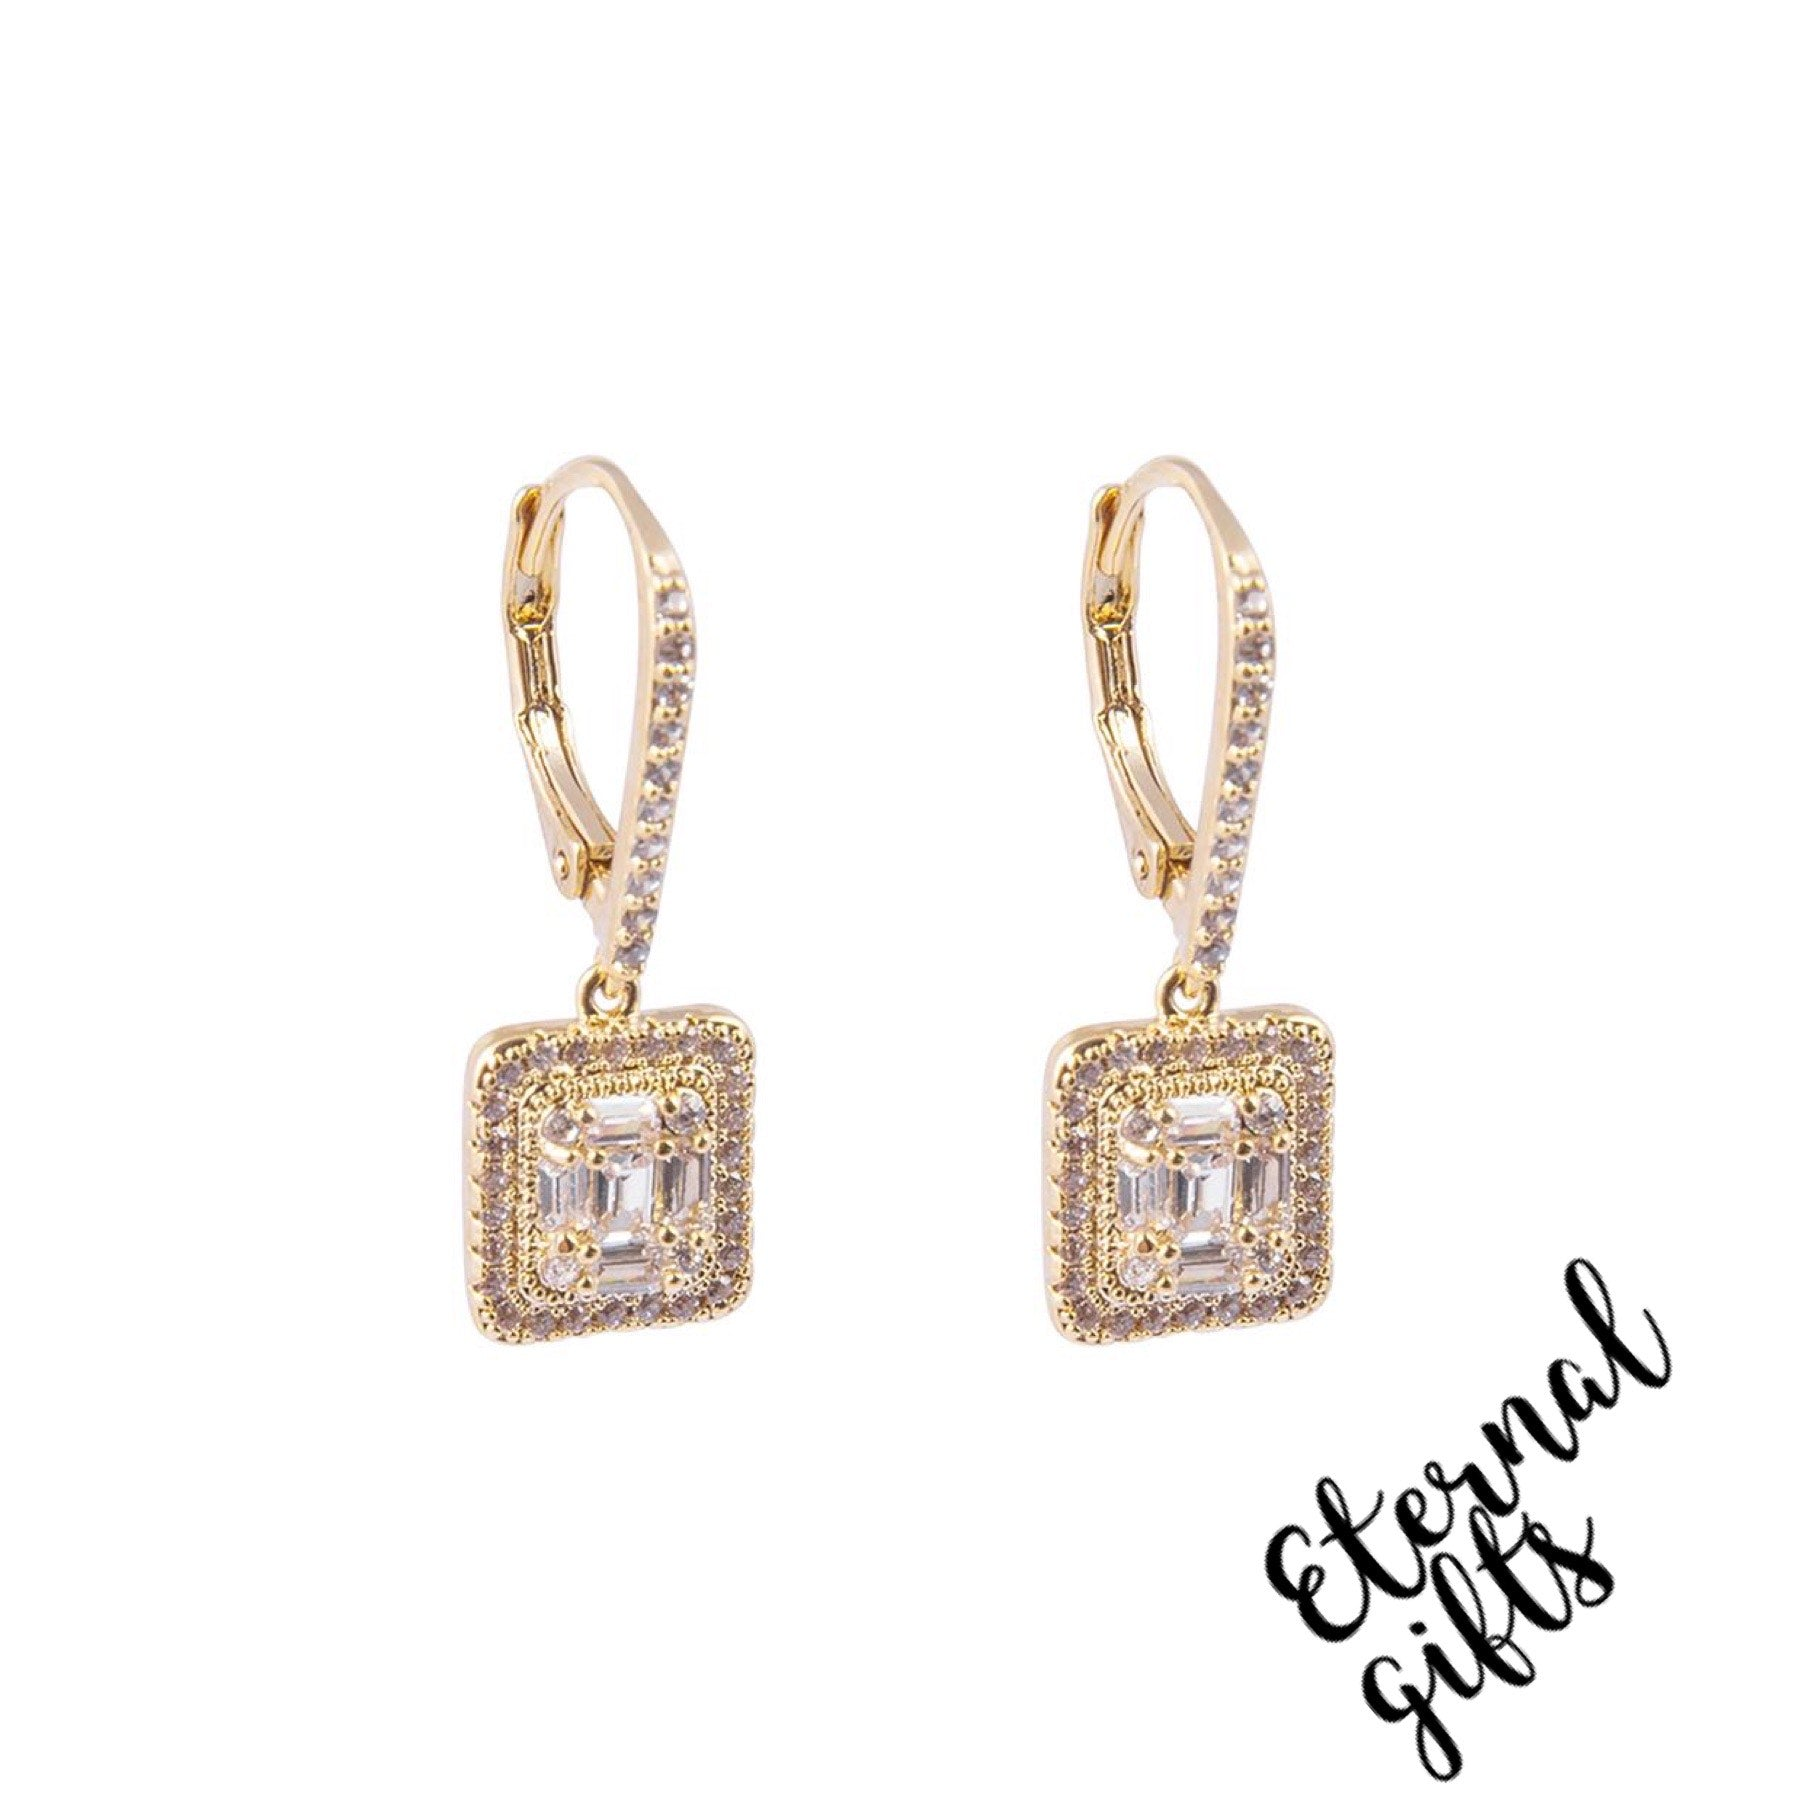 Isabella Gold Earrings -Knight and Day